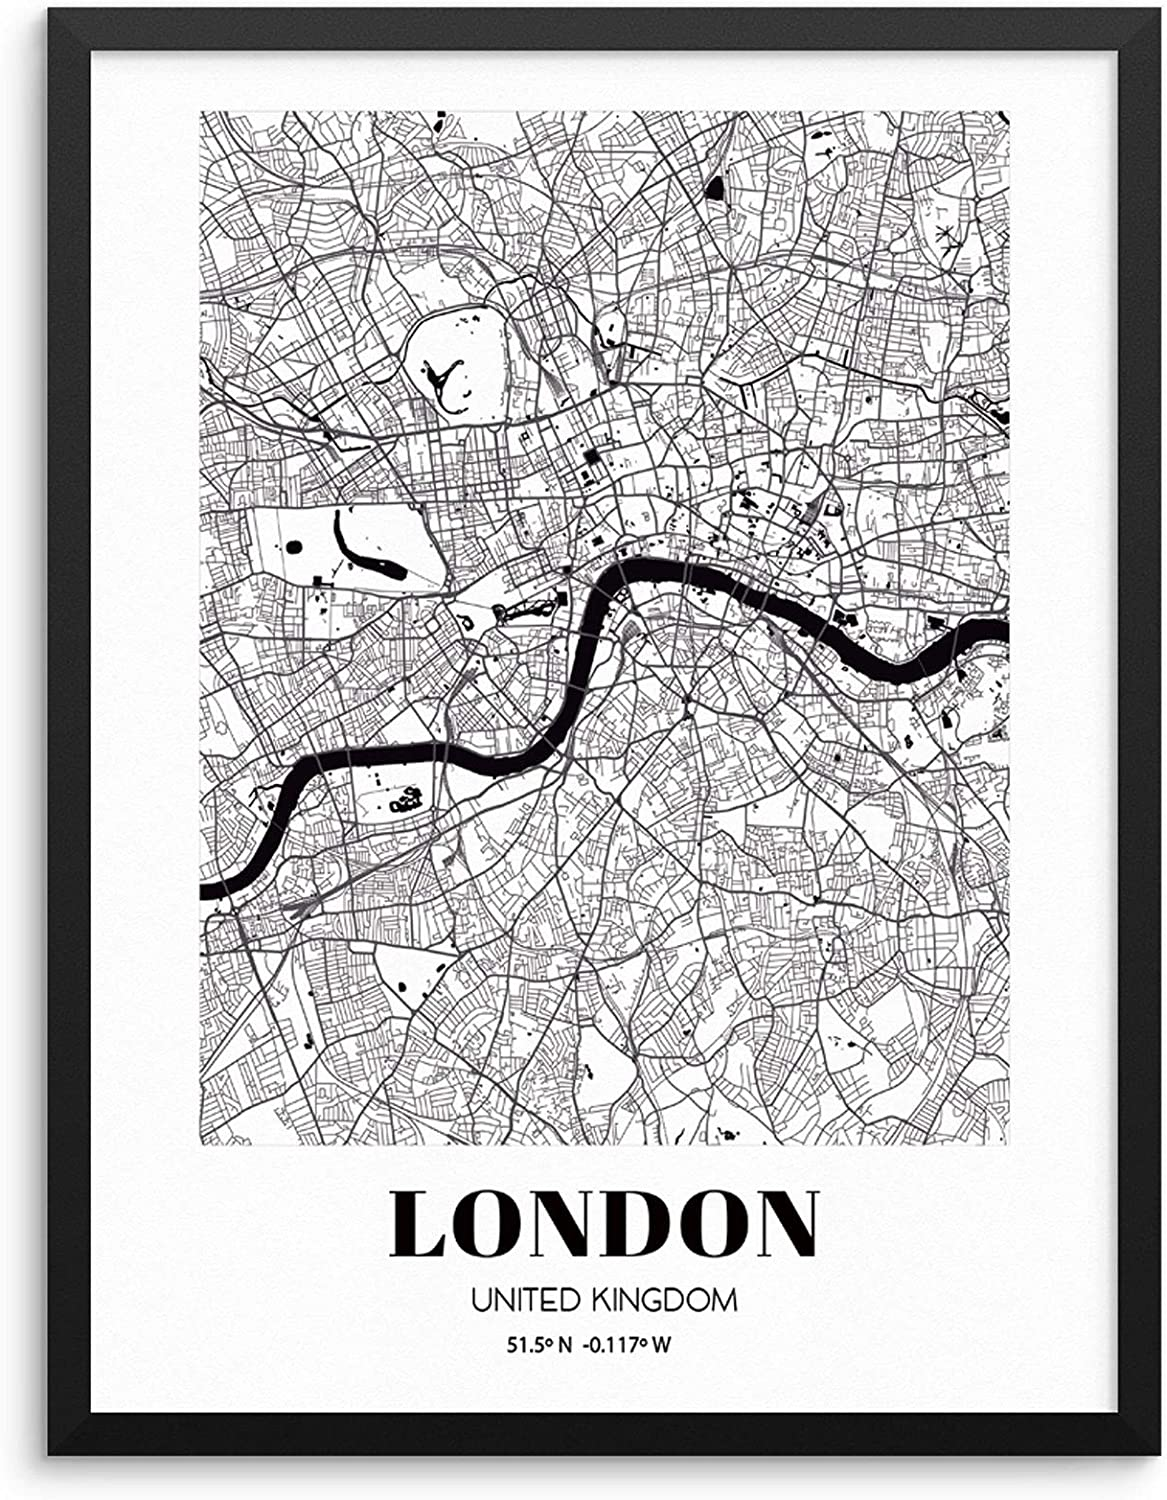 London City Grid Map Art Print England Cityscape Road Map Wall Poster  20